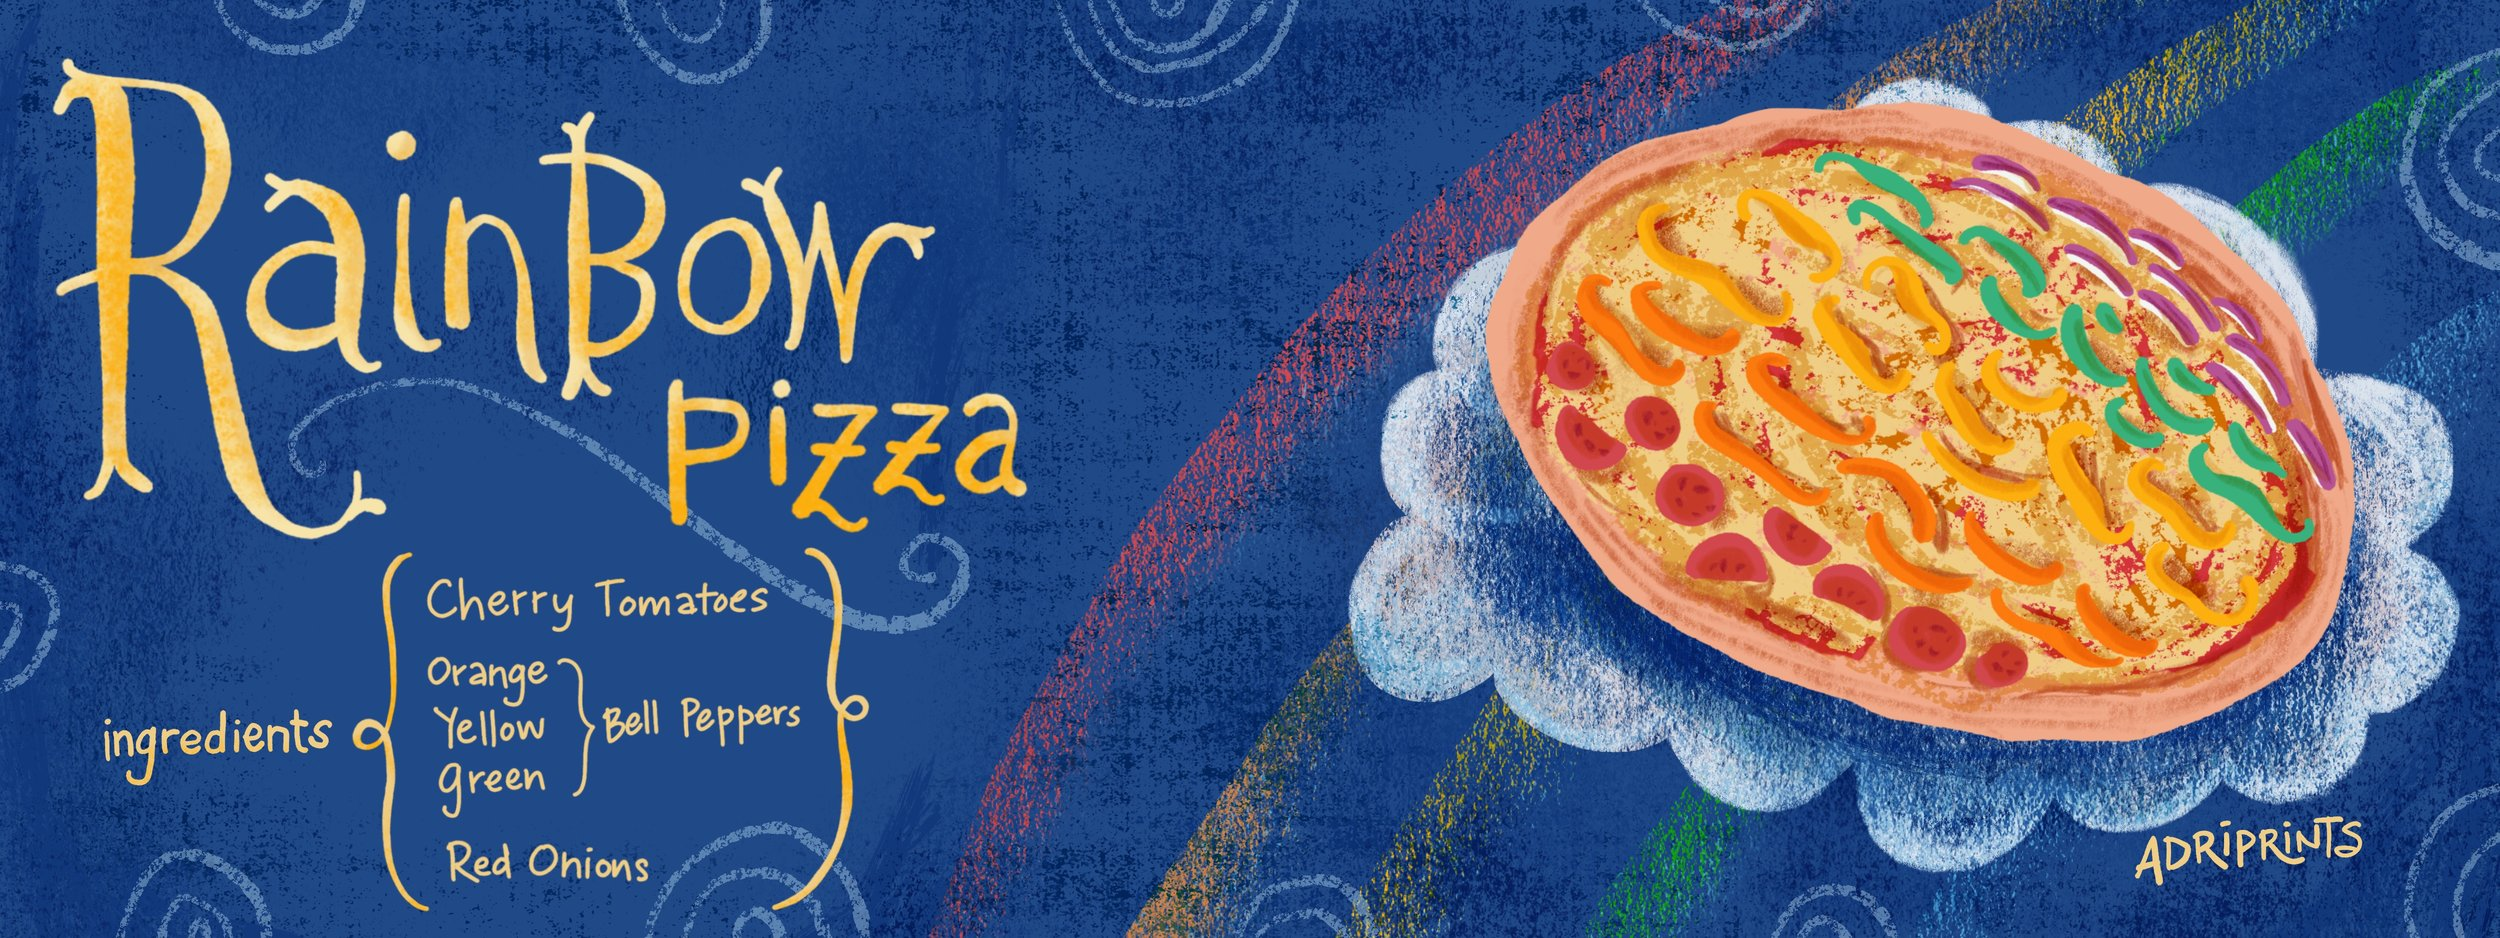 rainbow-pizza2.jpg